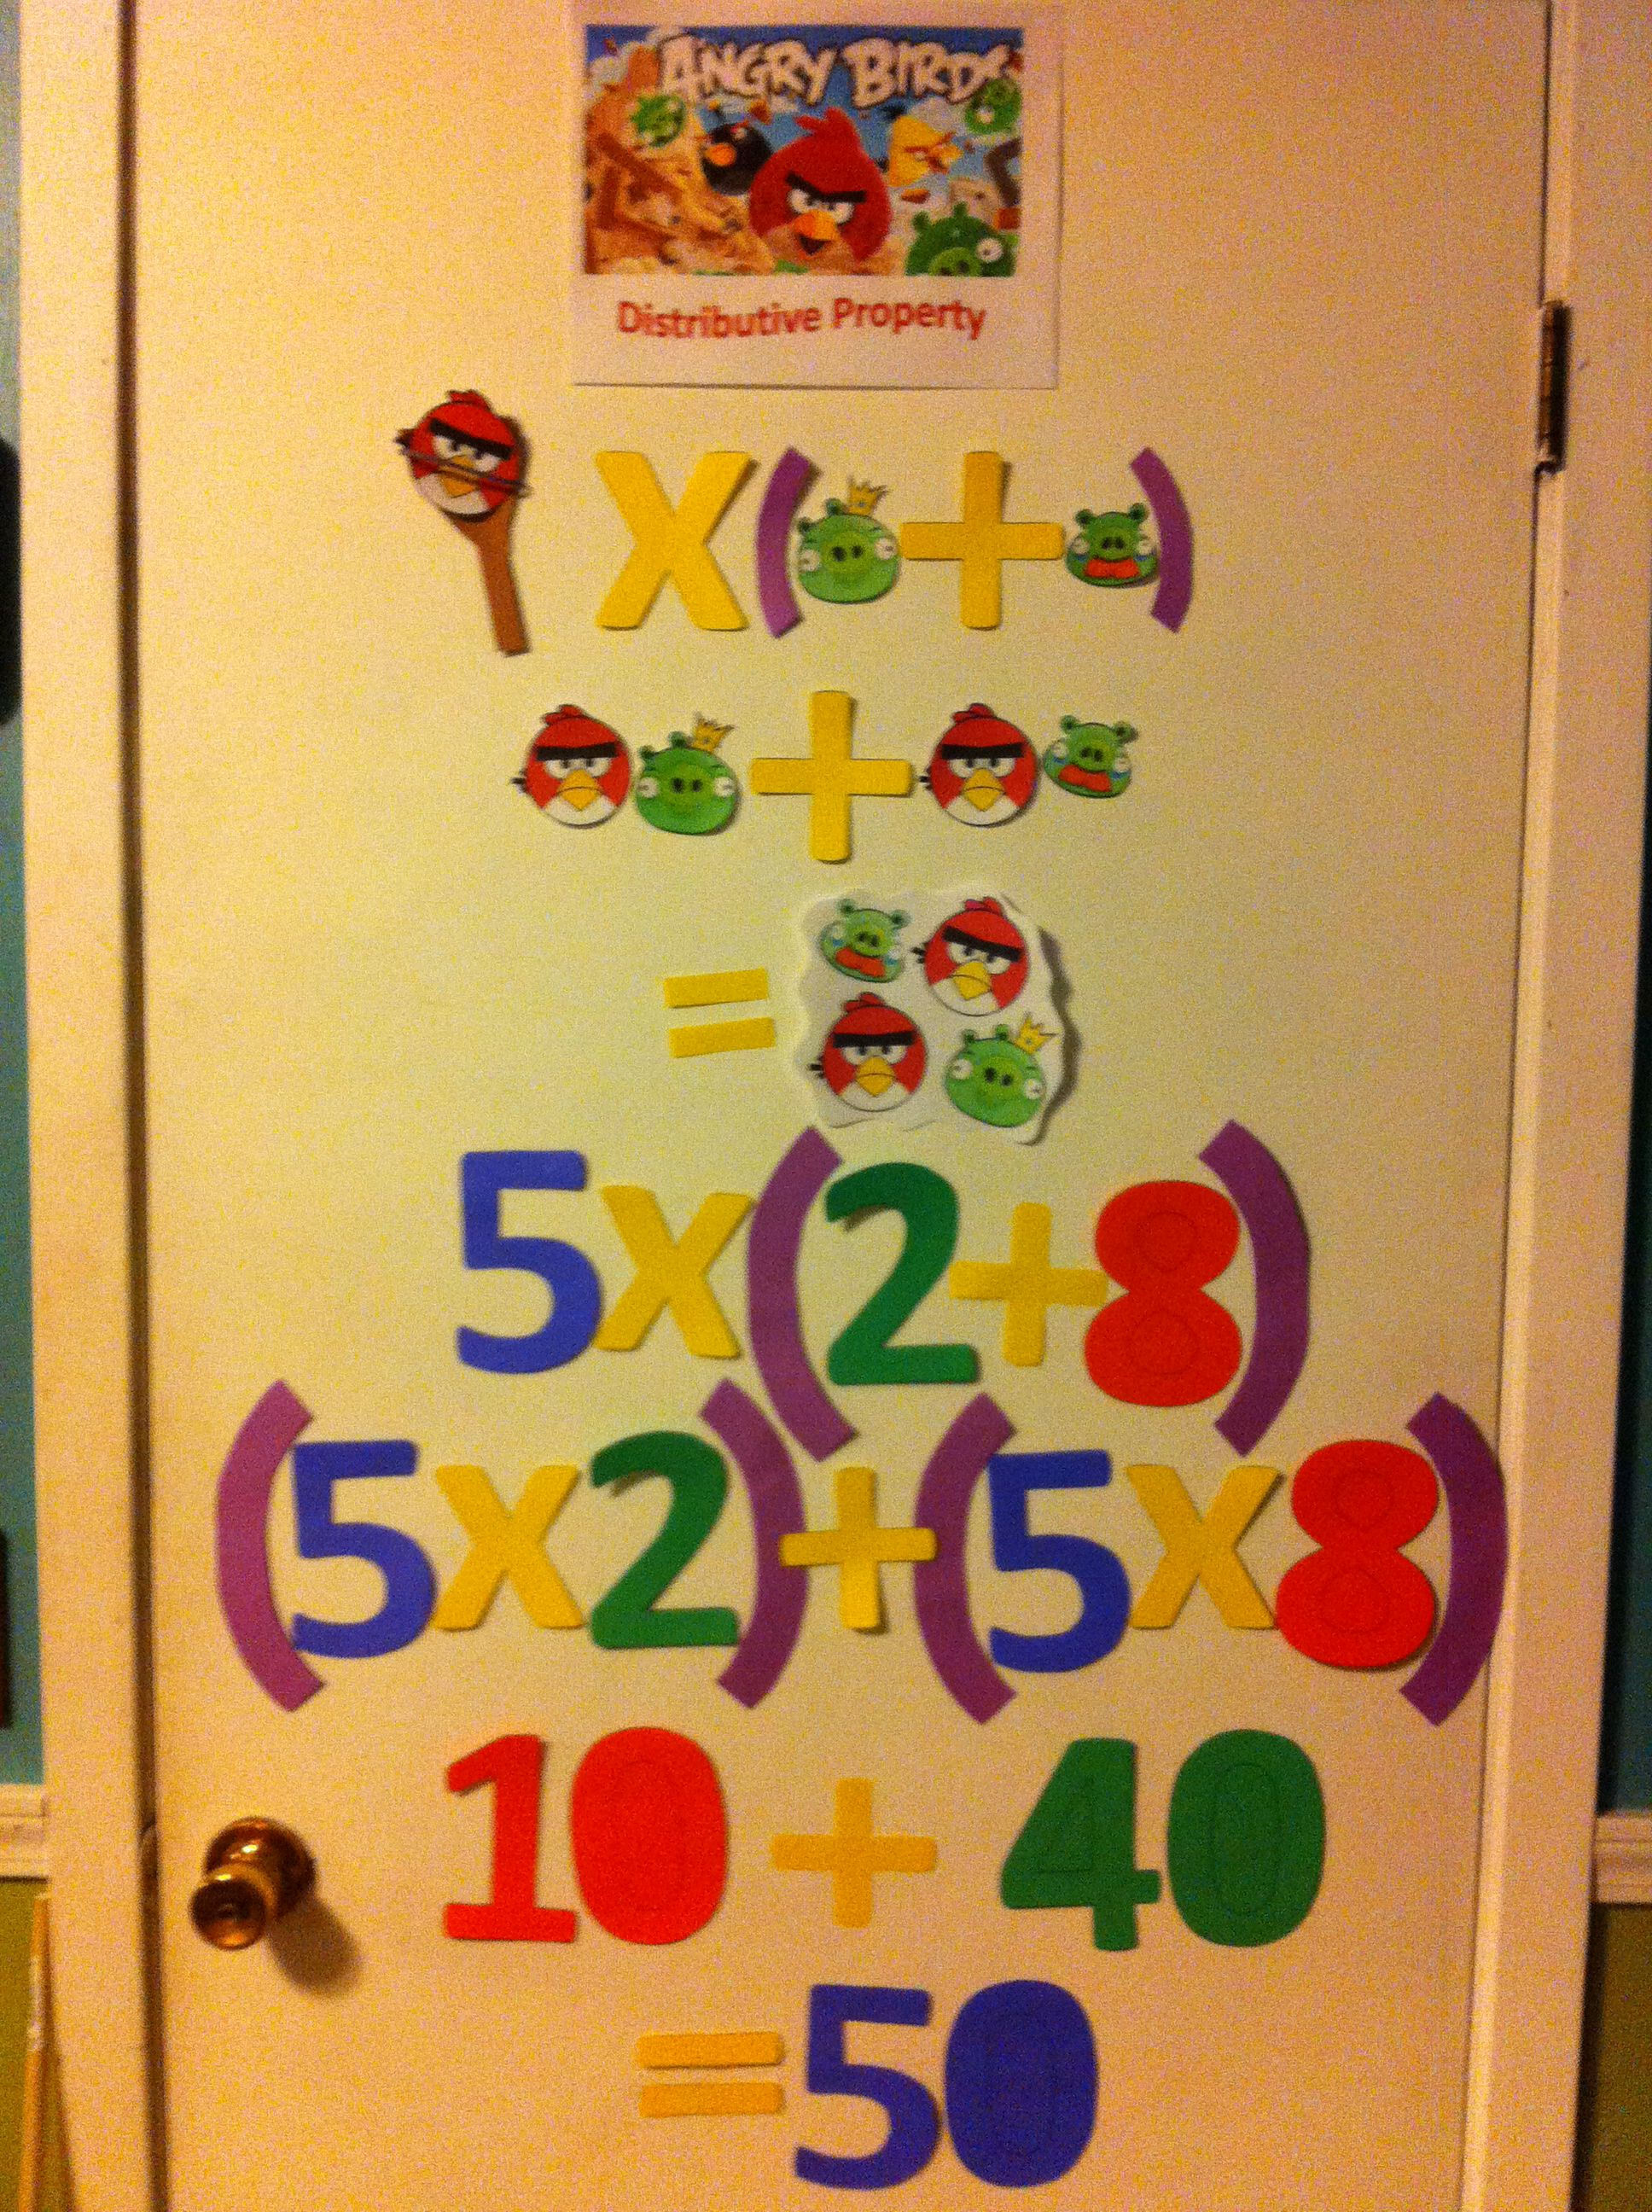 Distributive Property Lesson Angry Birds